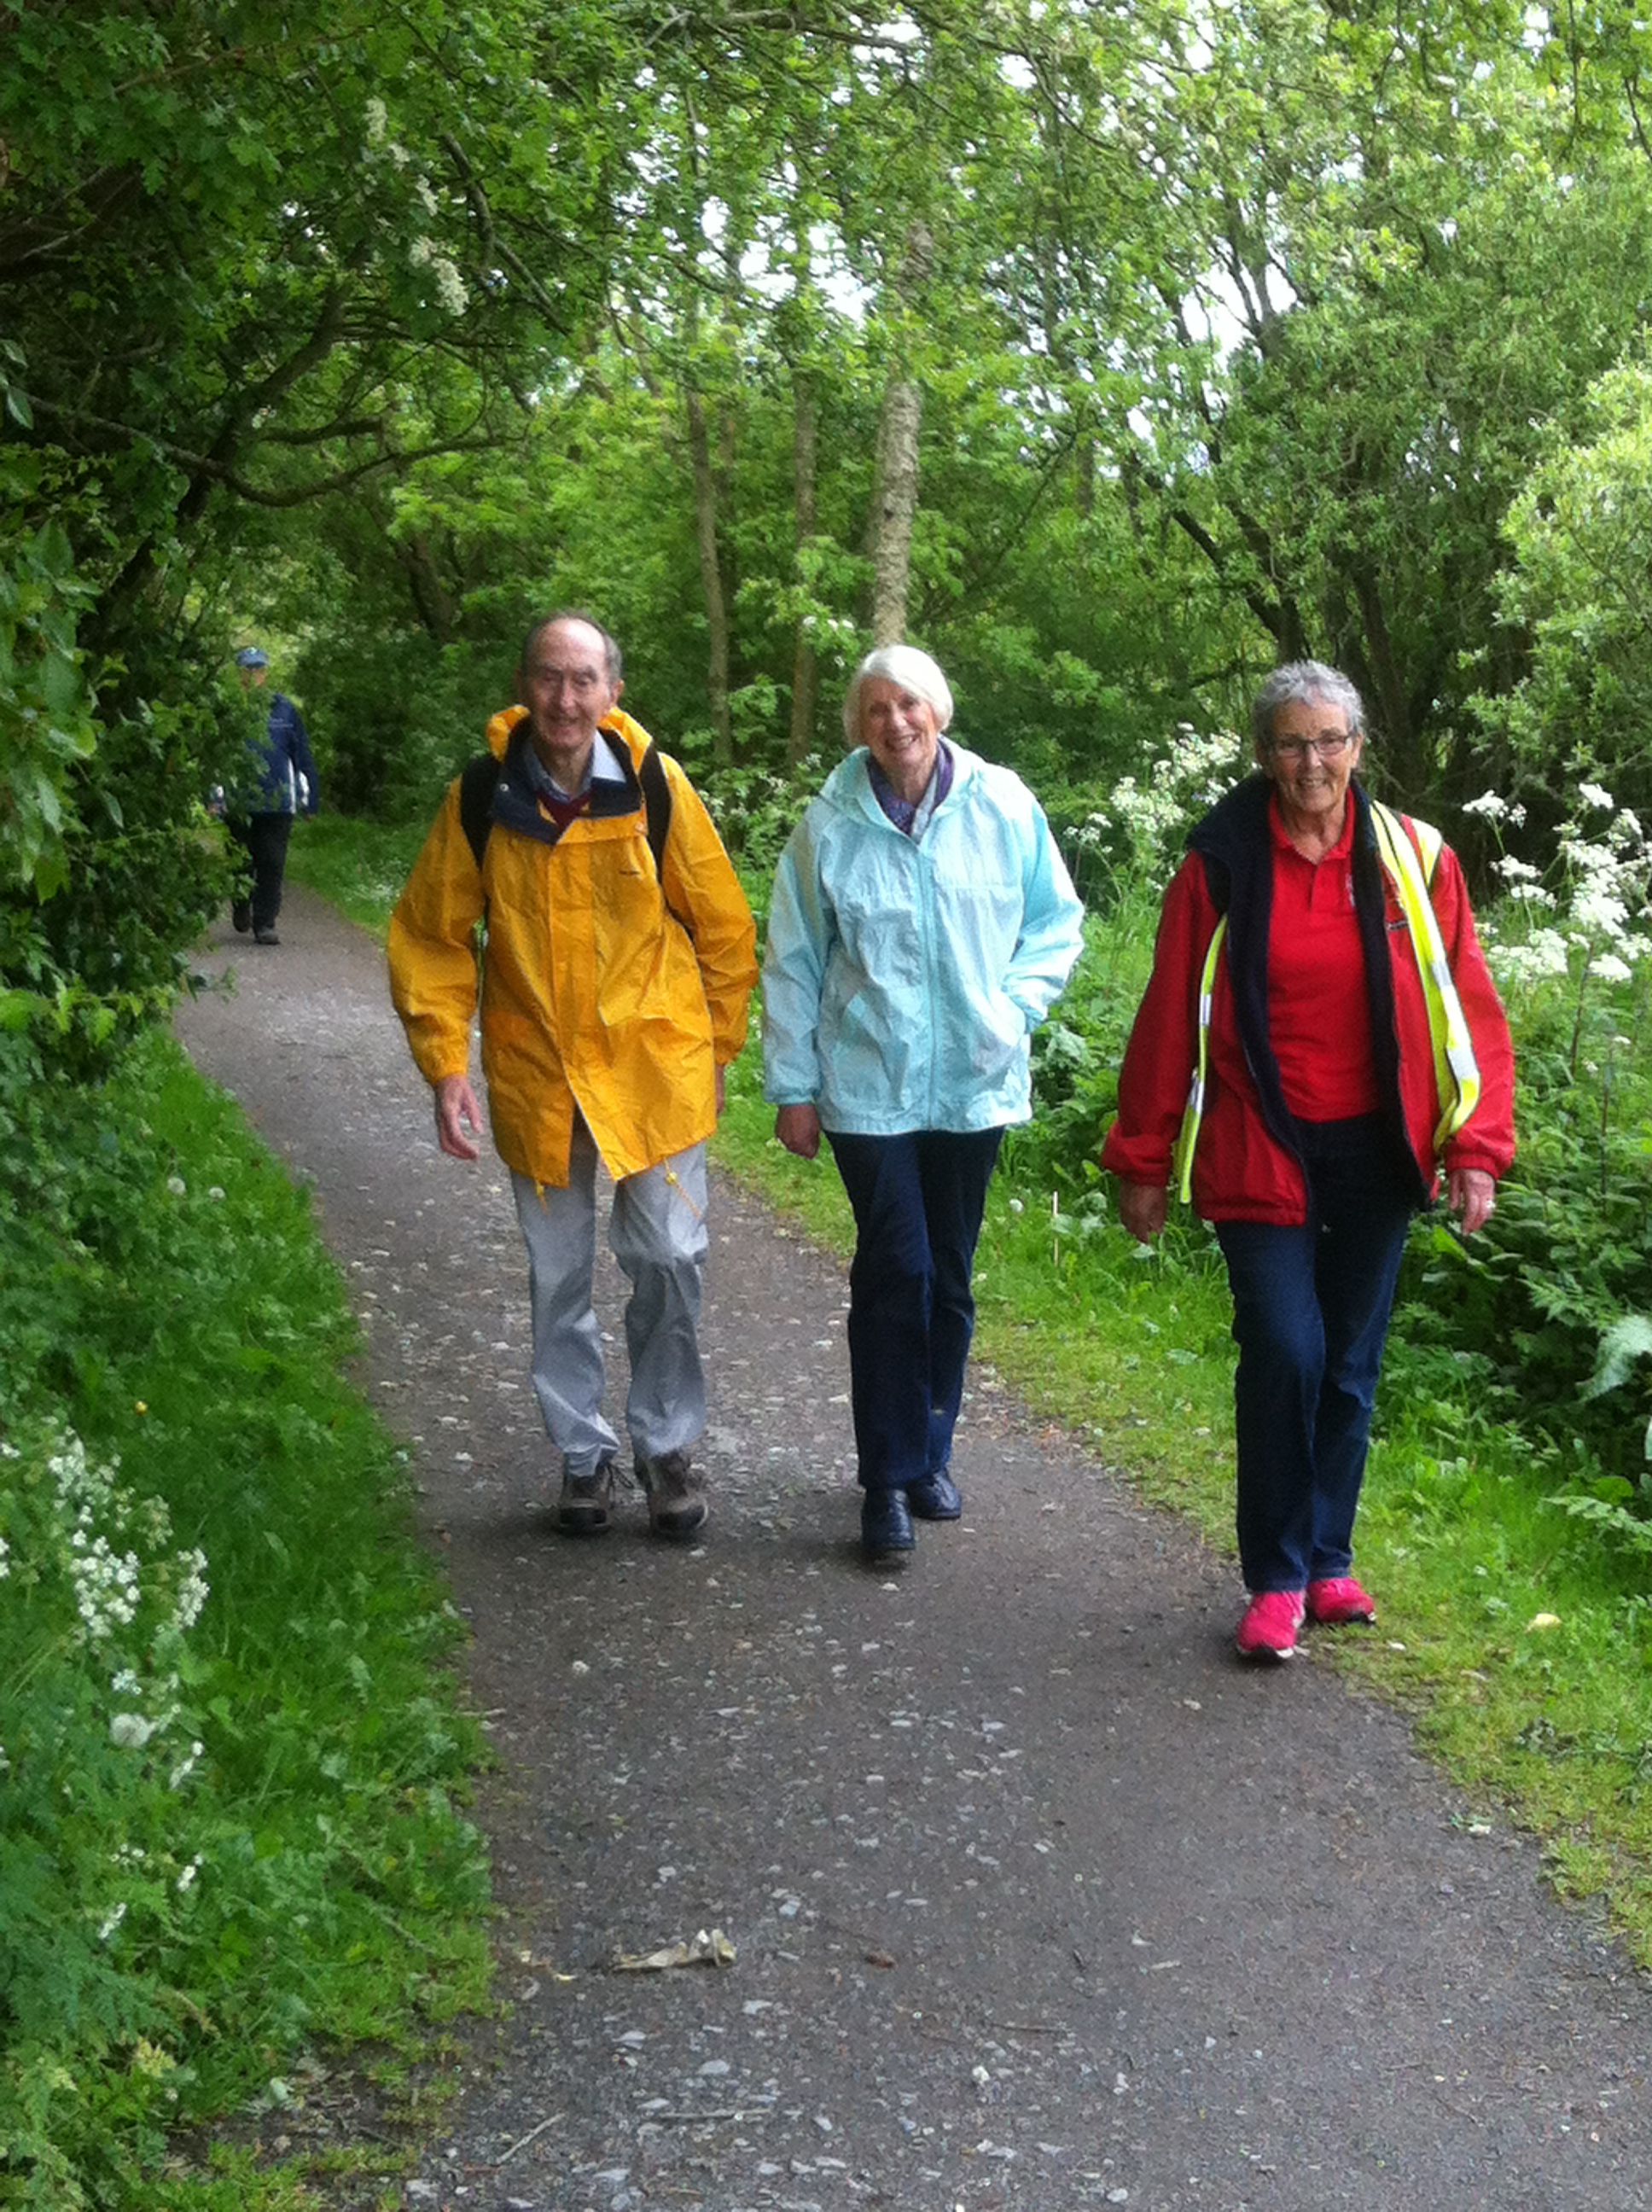 Details of our walking club